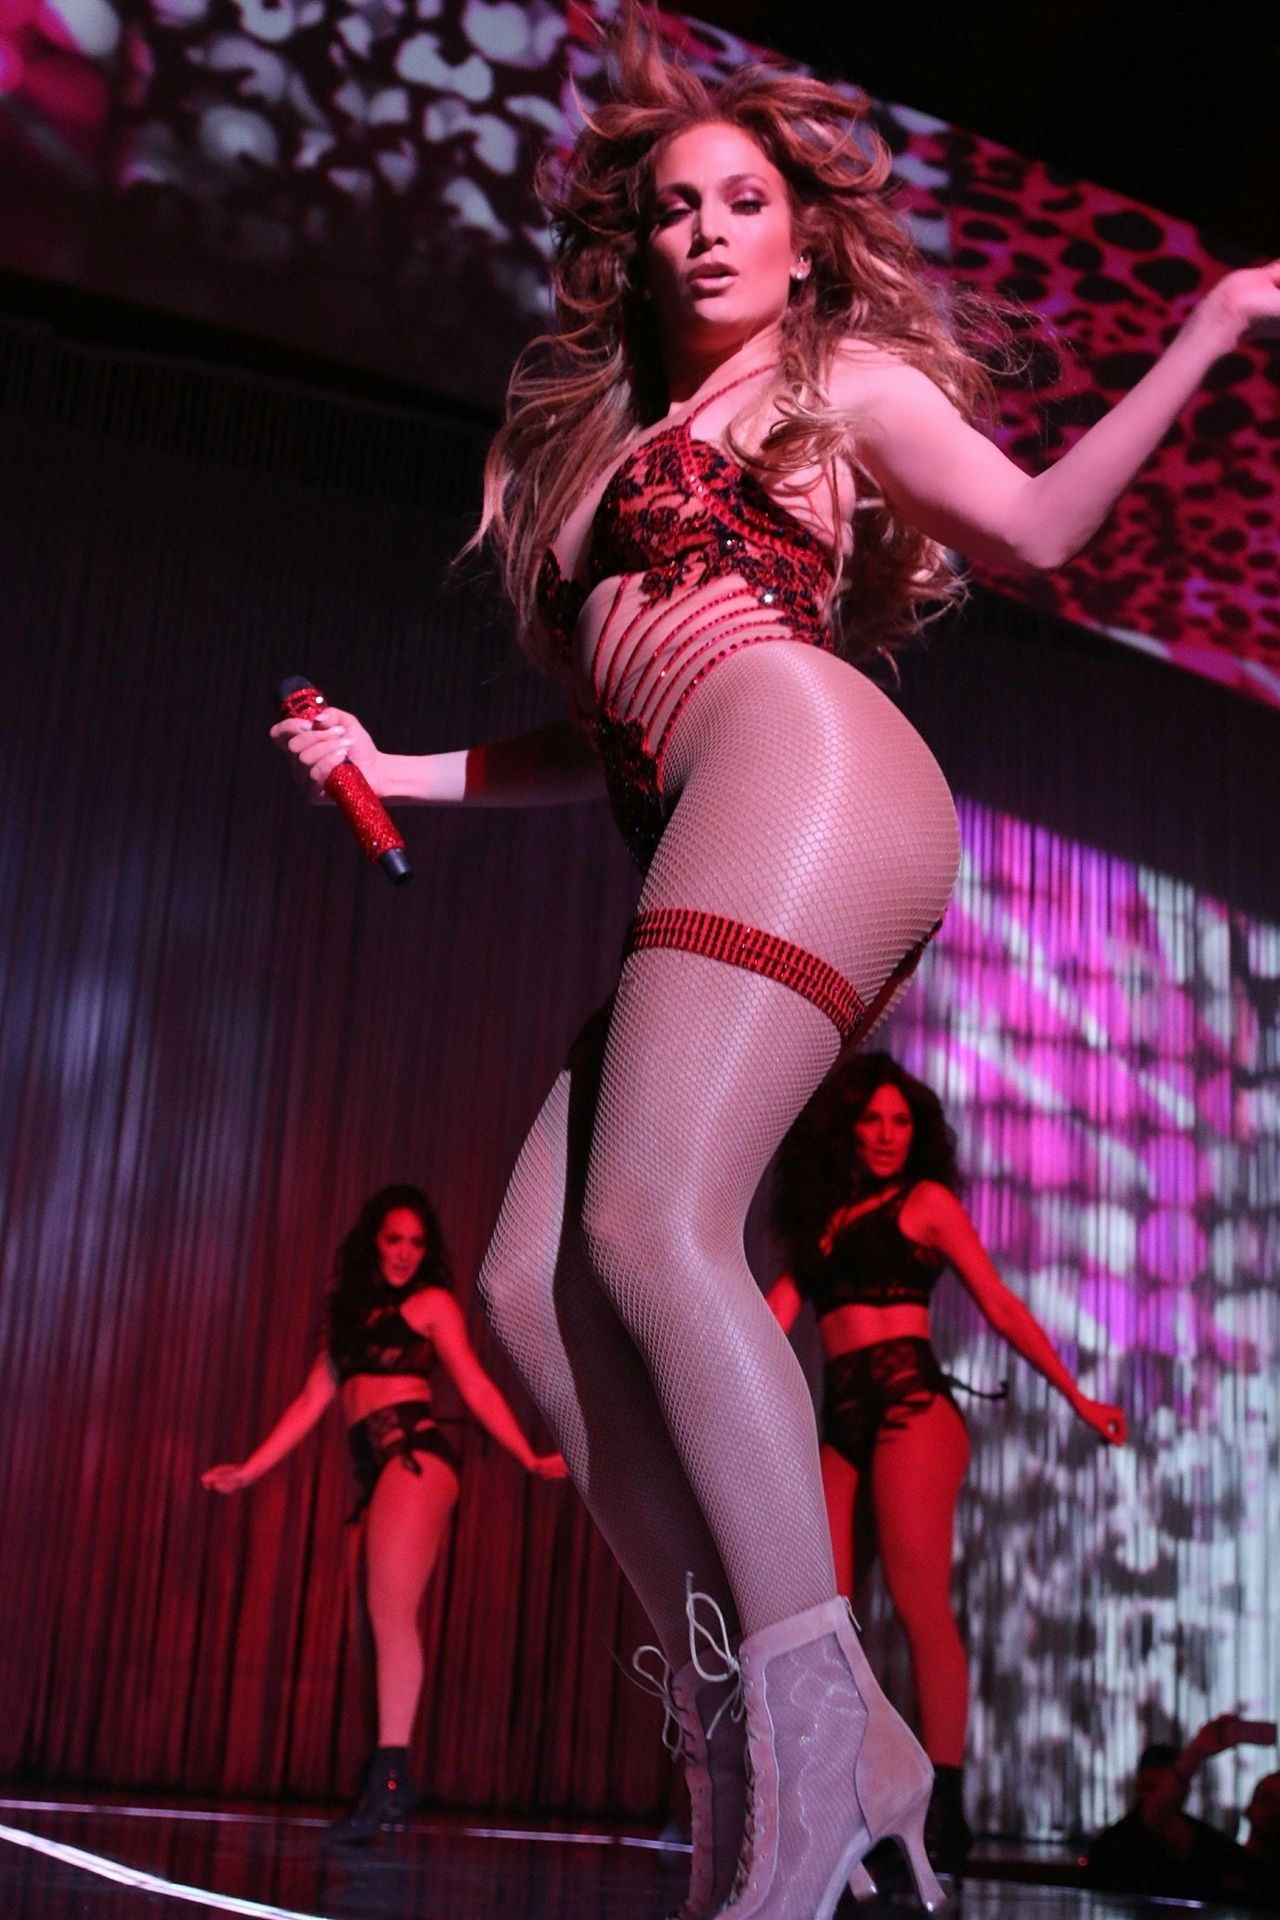 http://celebmafia.com/wp-content/uploads/2018/02/jennifer-lopez-performs-live-at-the-axis-in-planet-hollywood-in-las-vegas-02-23-2018-6.jpg